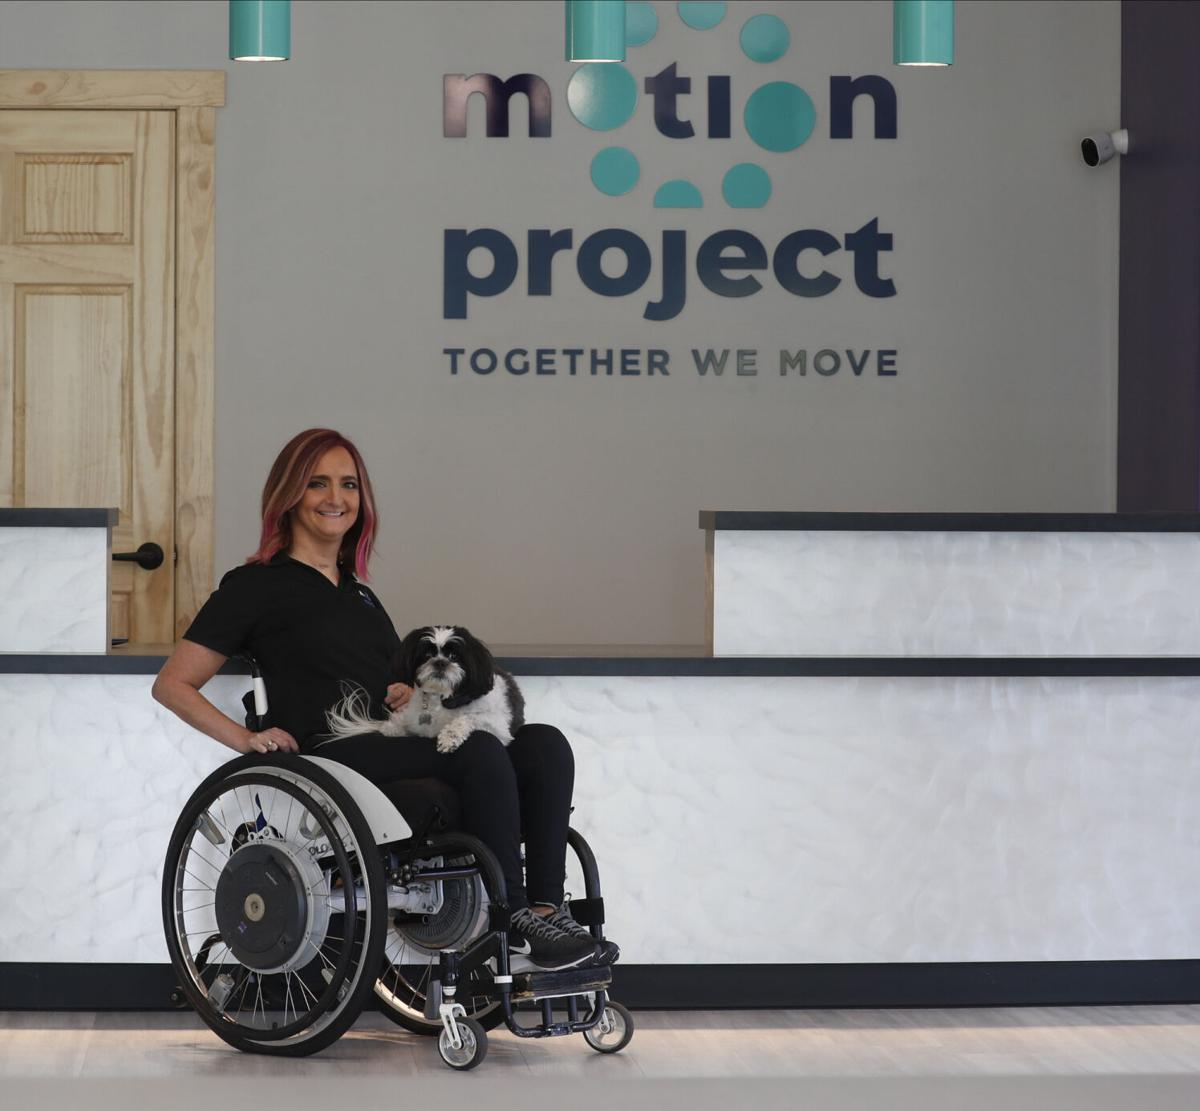 Motion Project, the new spinal cord injury rehab center